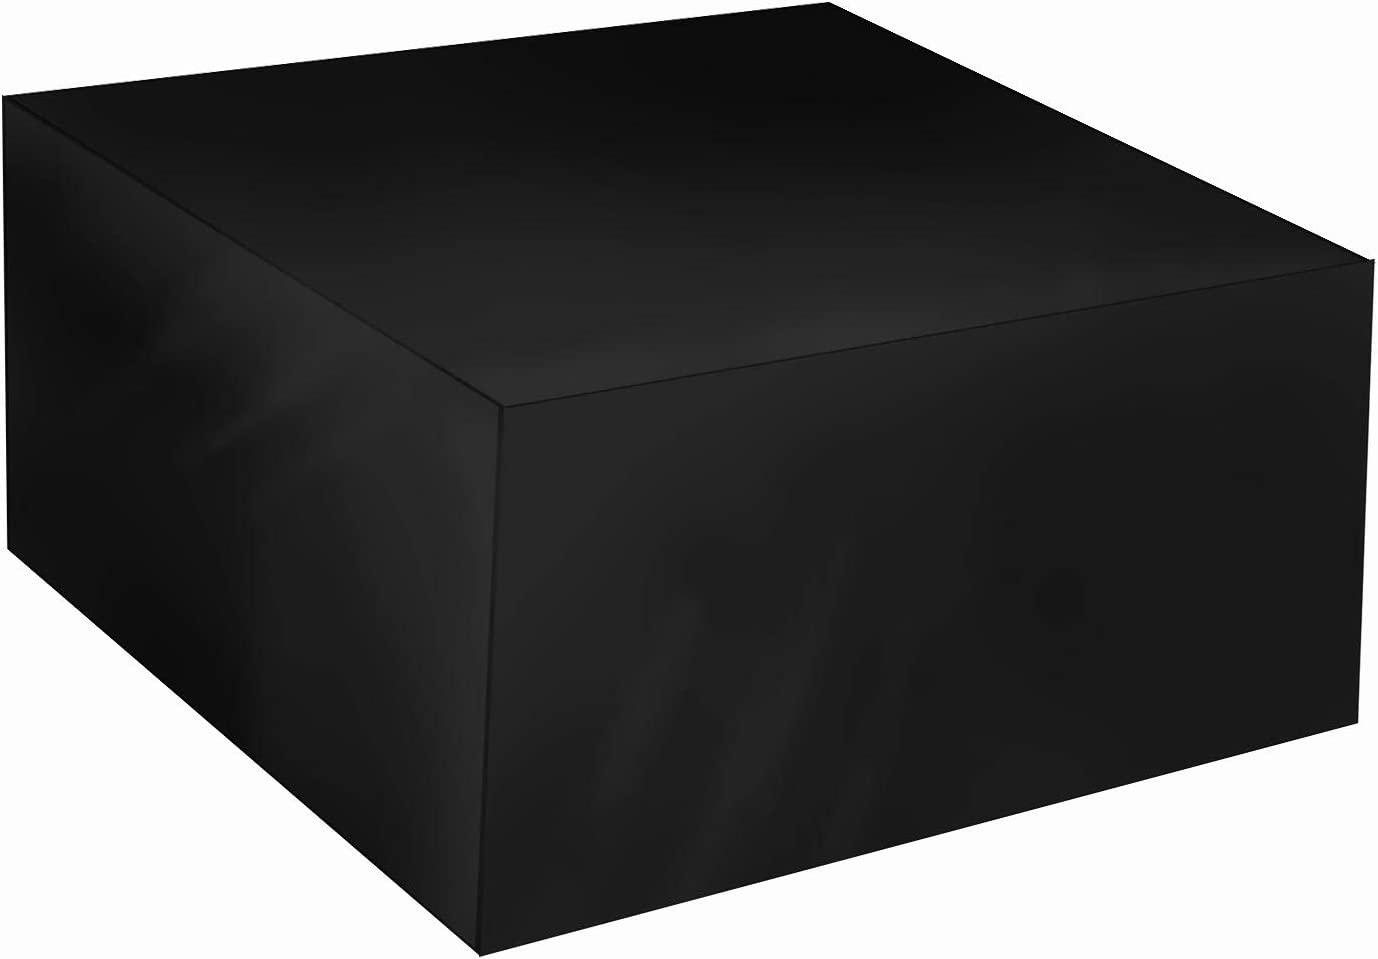 SING F LTD Patio Furniture Covers Waterproof Rectangular Outdoor Garden Chair Table Cover Outdoor Large Size Furniture Set Covers